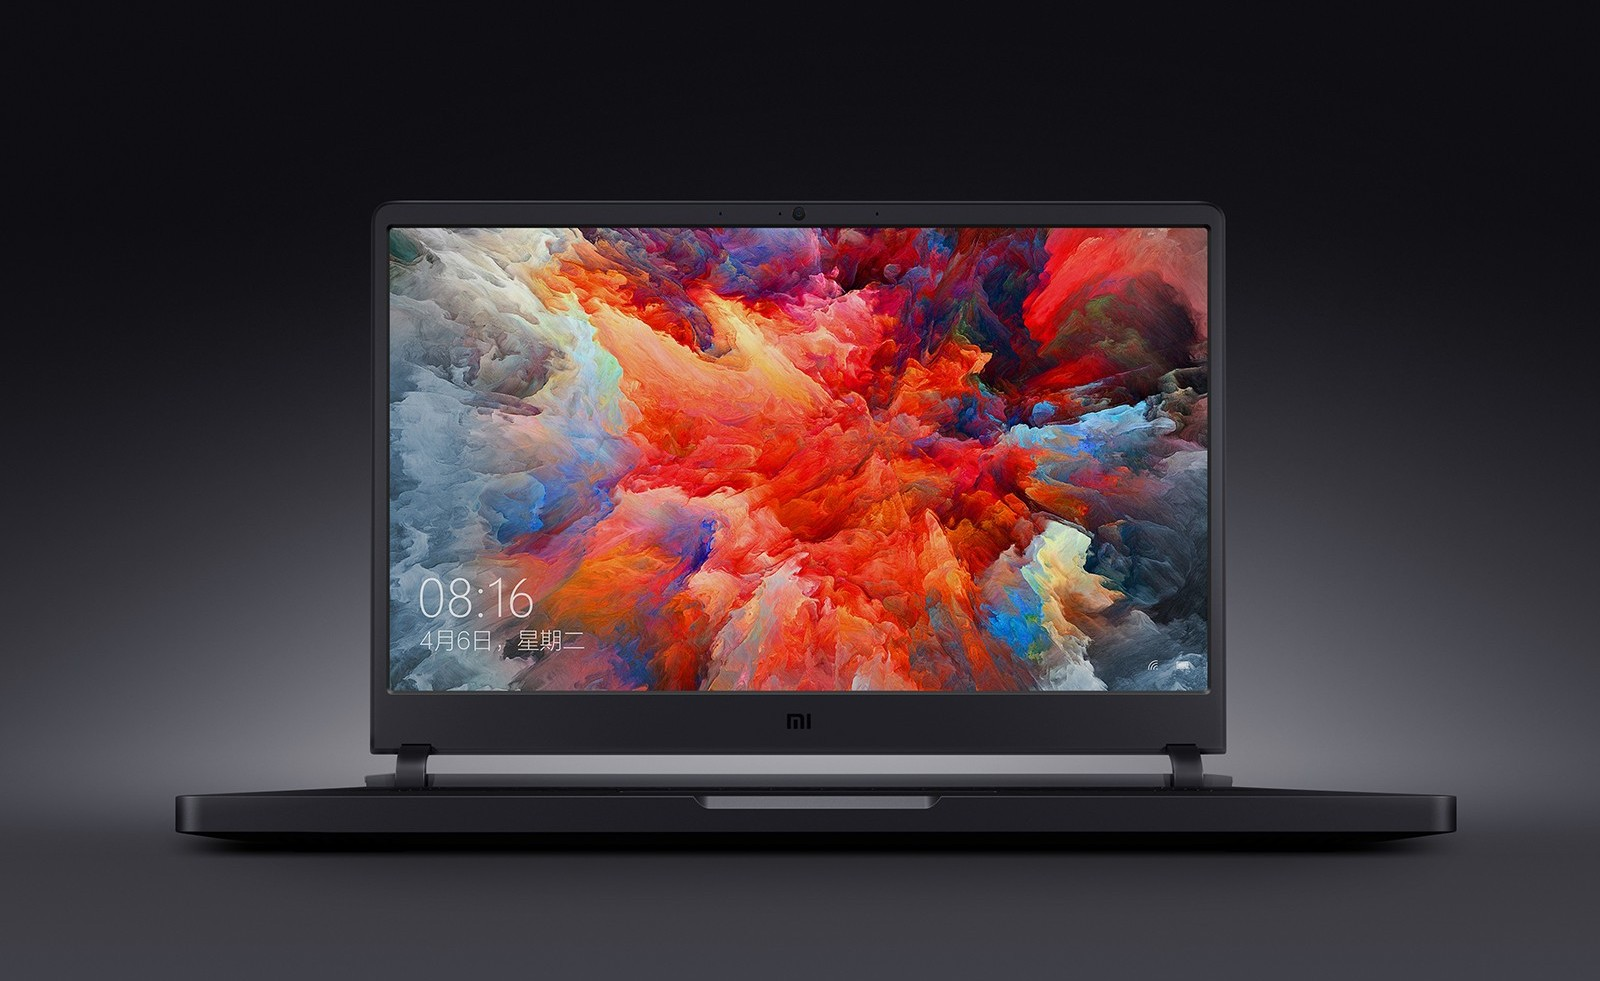 xiaomi-mi-gaming-laptop-notebook-15.6